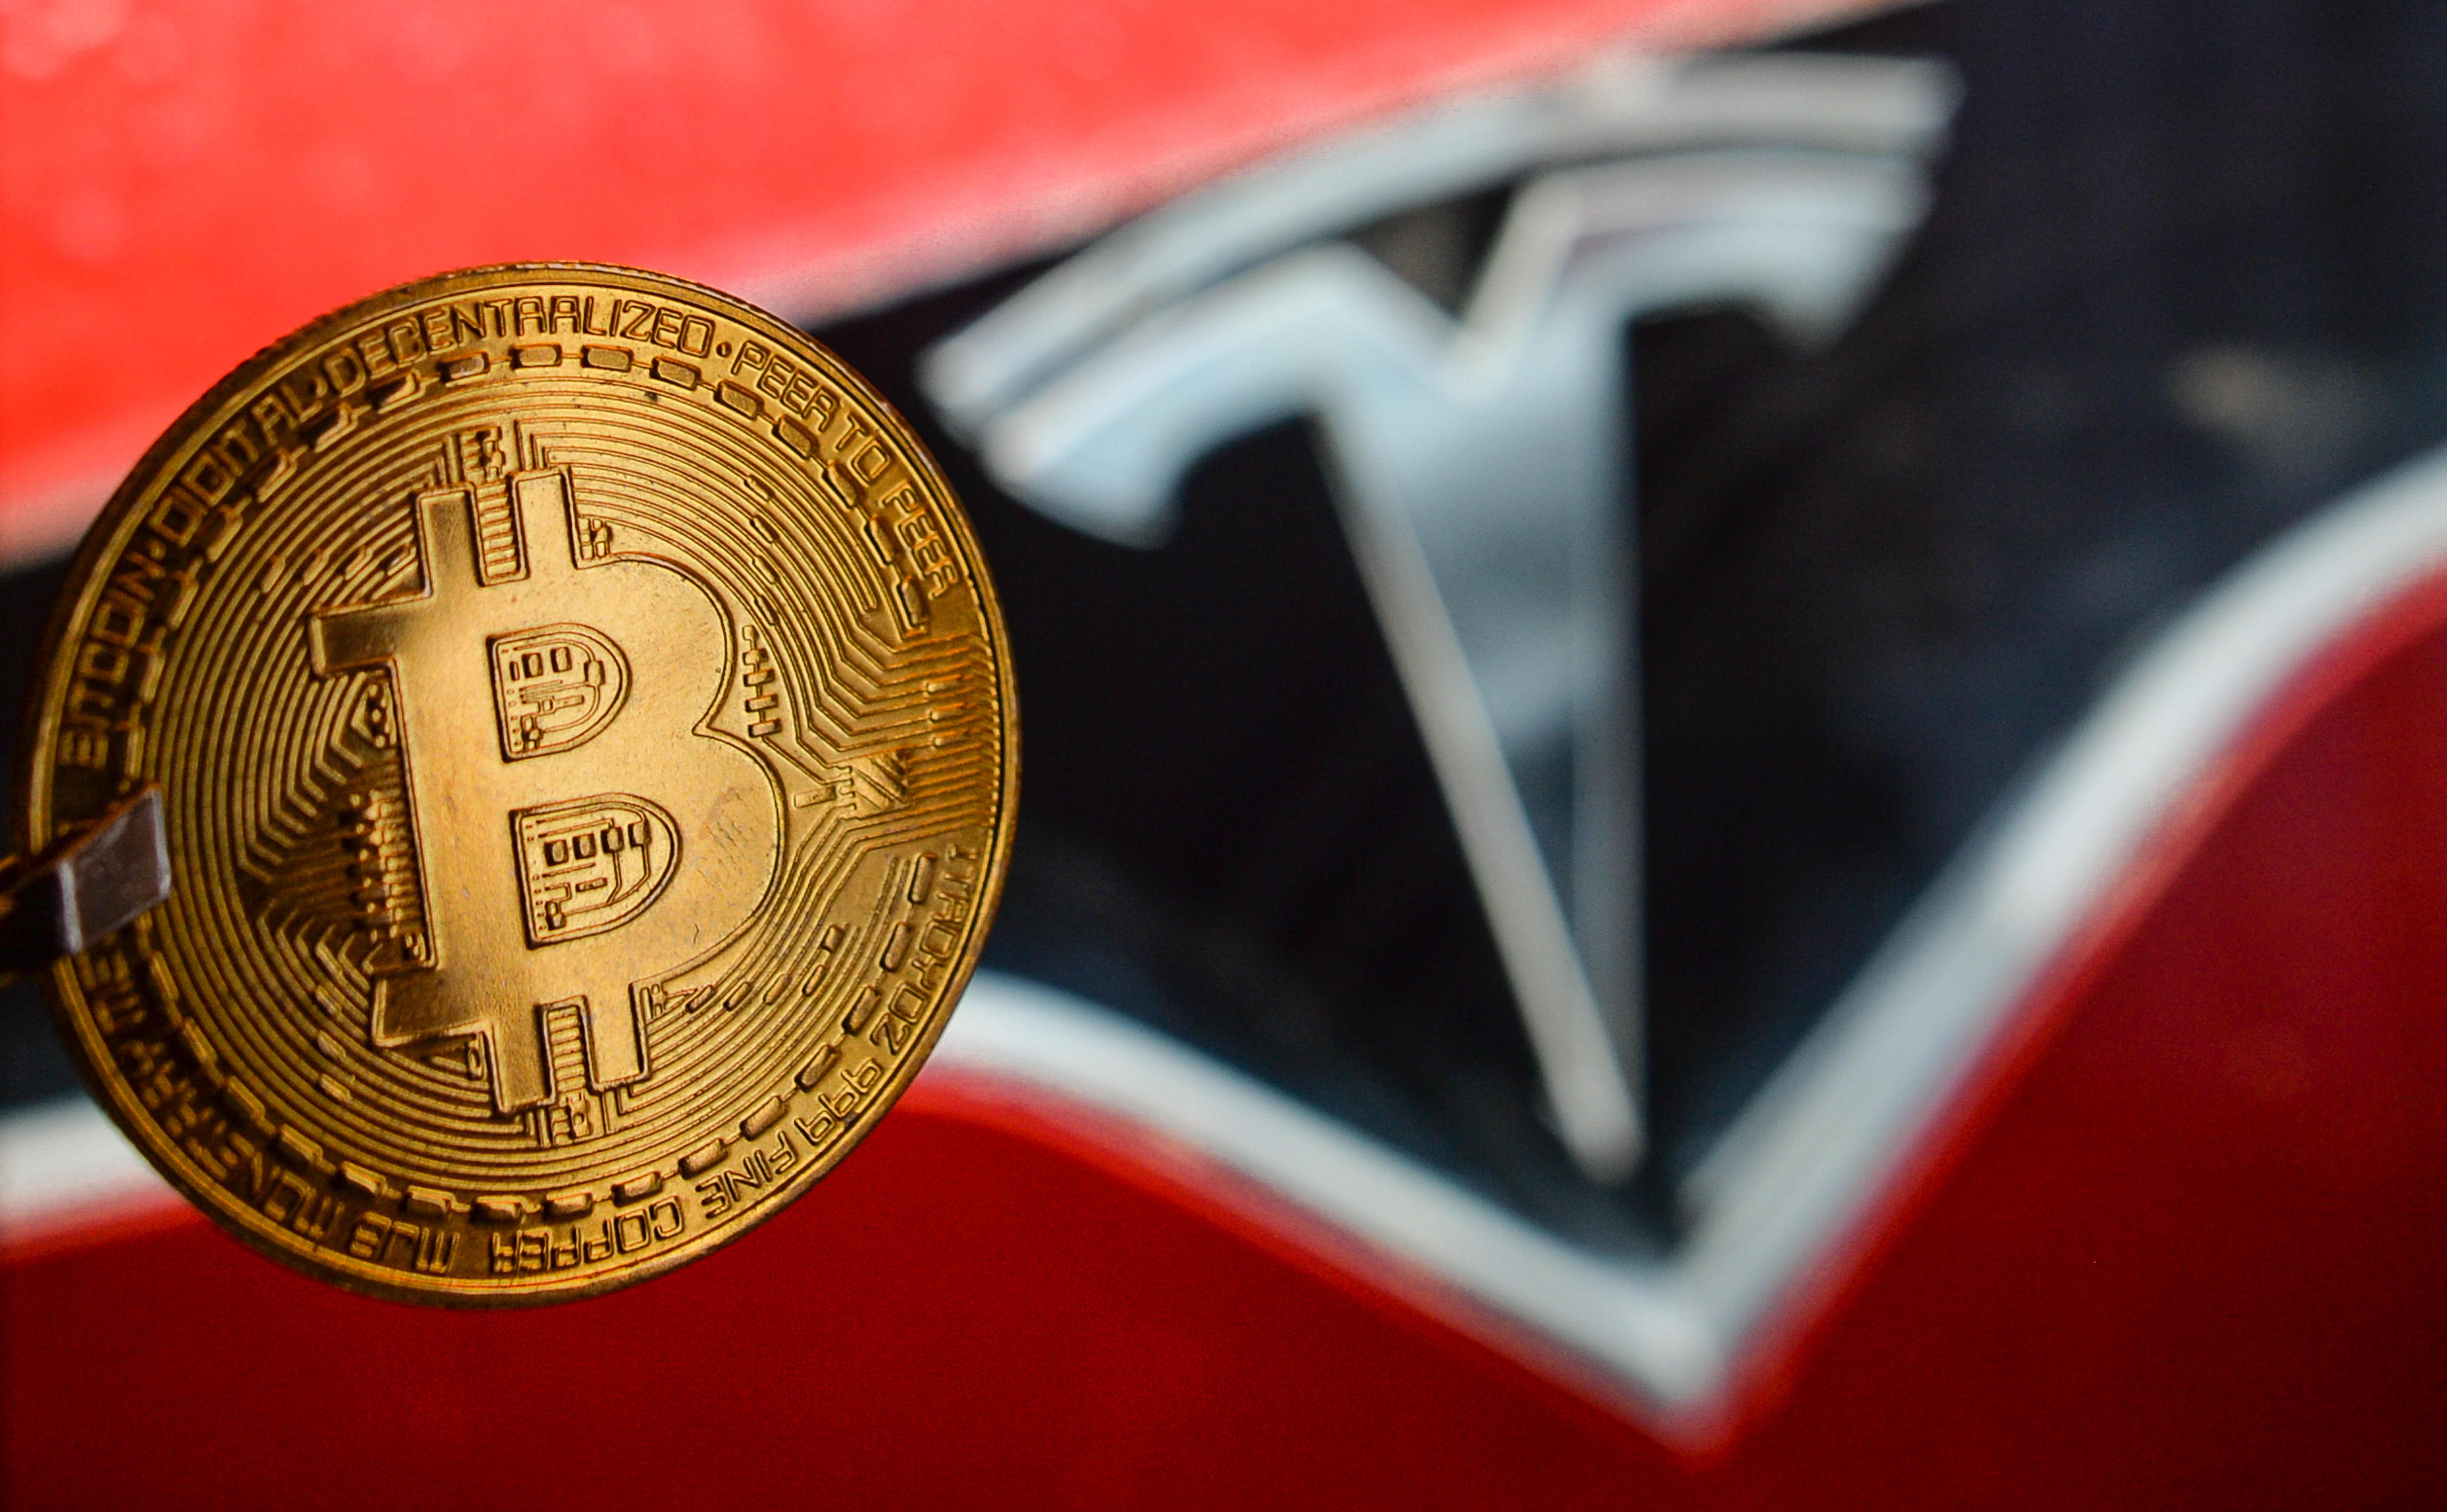 Tesla has made about $1 billion in profit on its bitcoin investment, analyst estimates